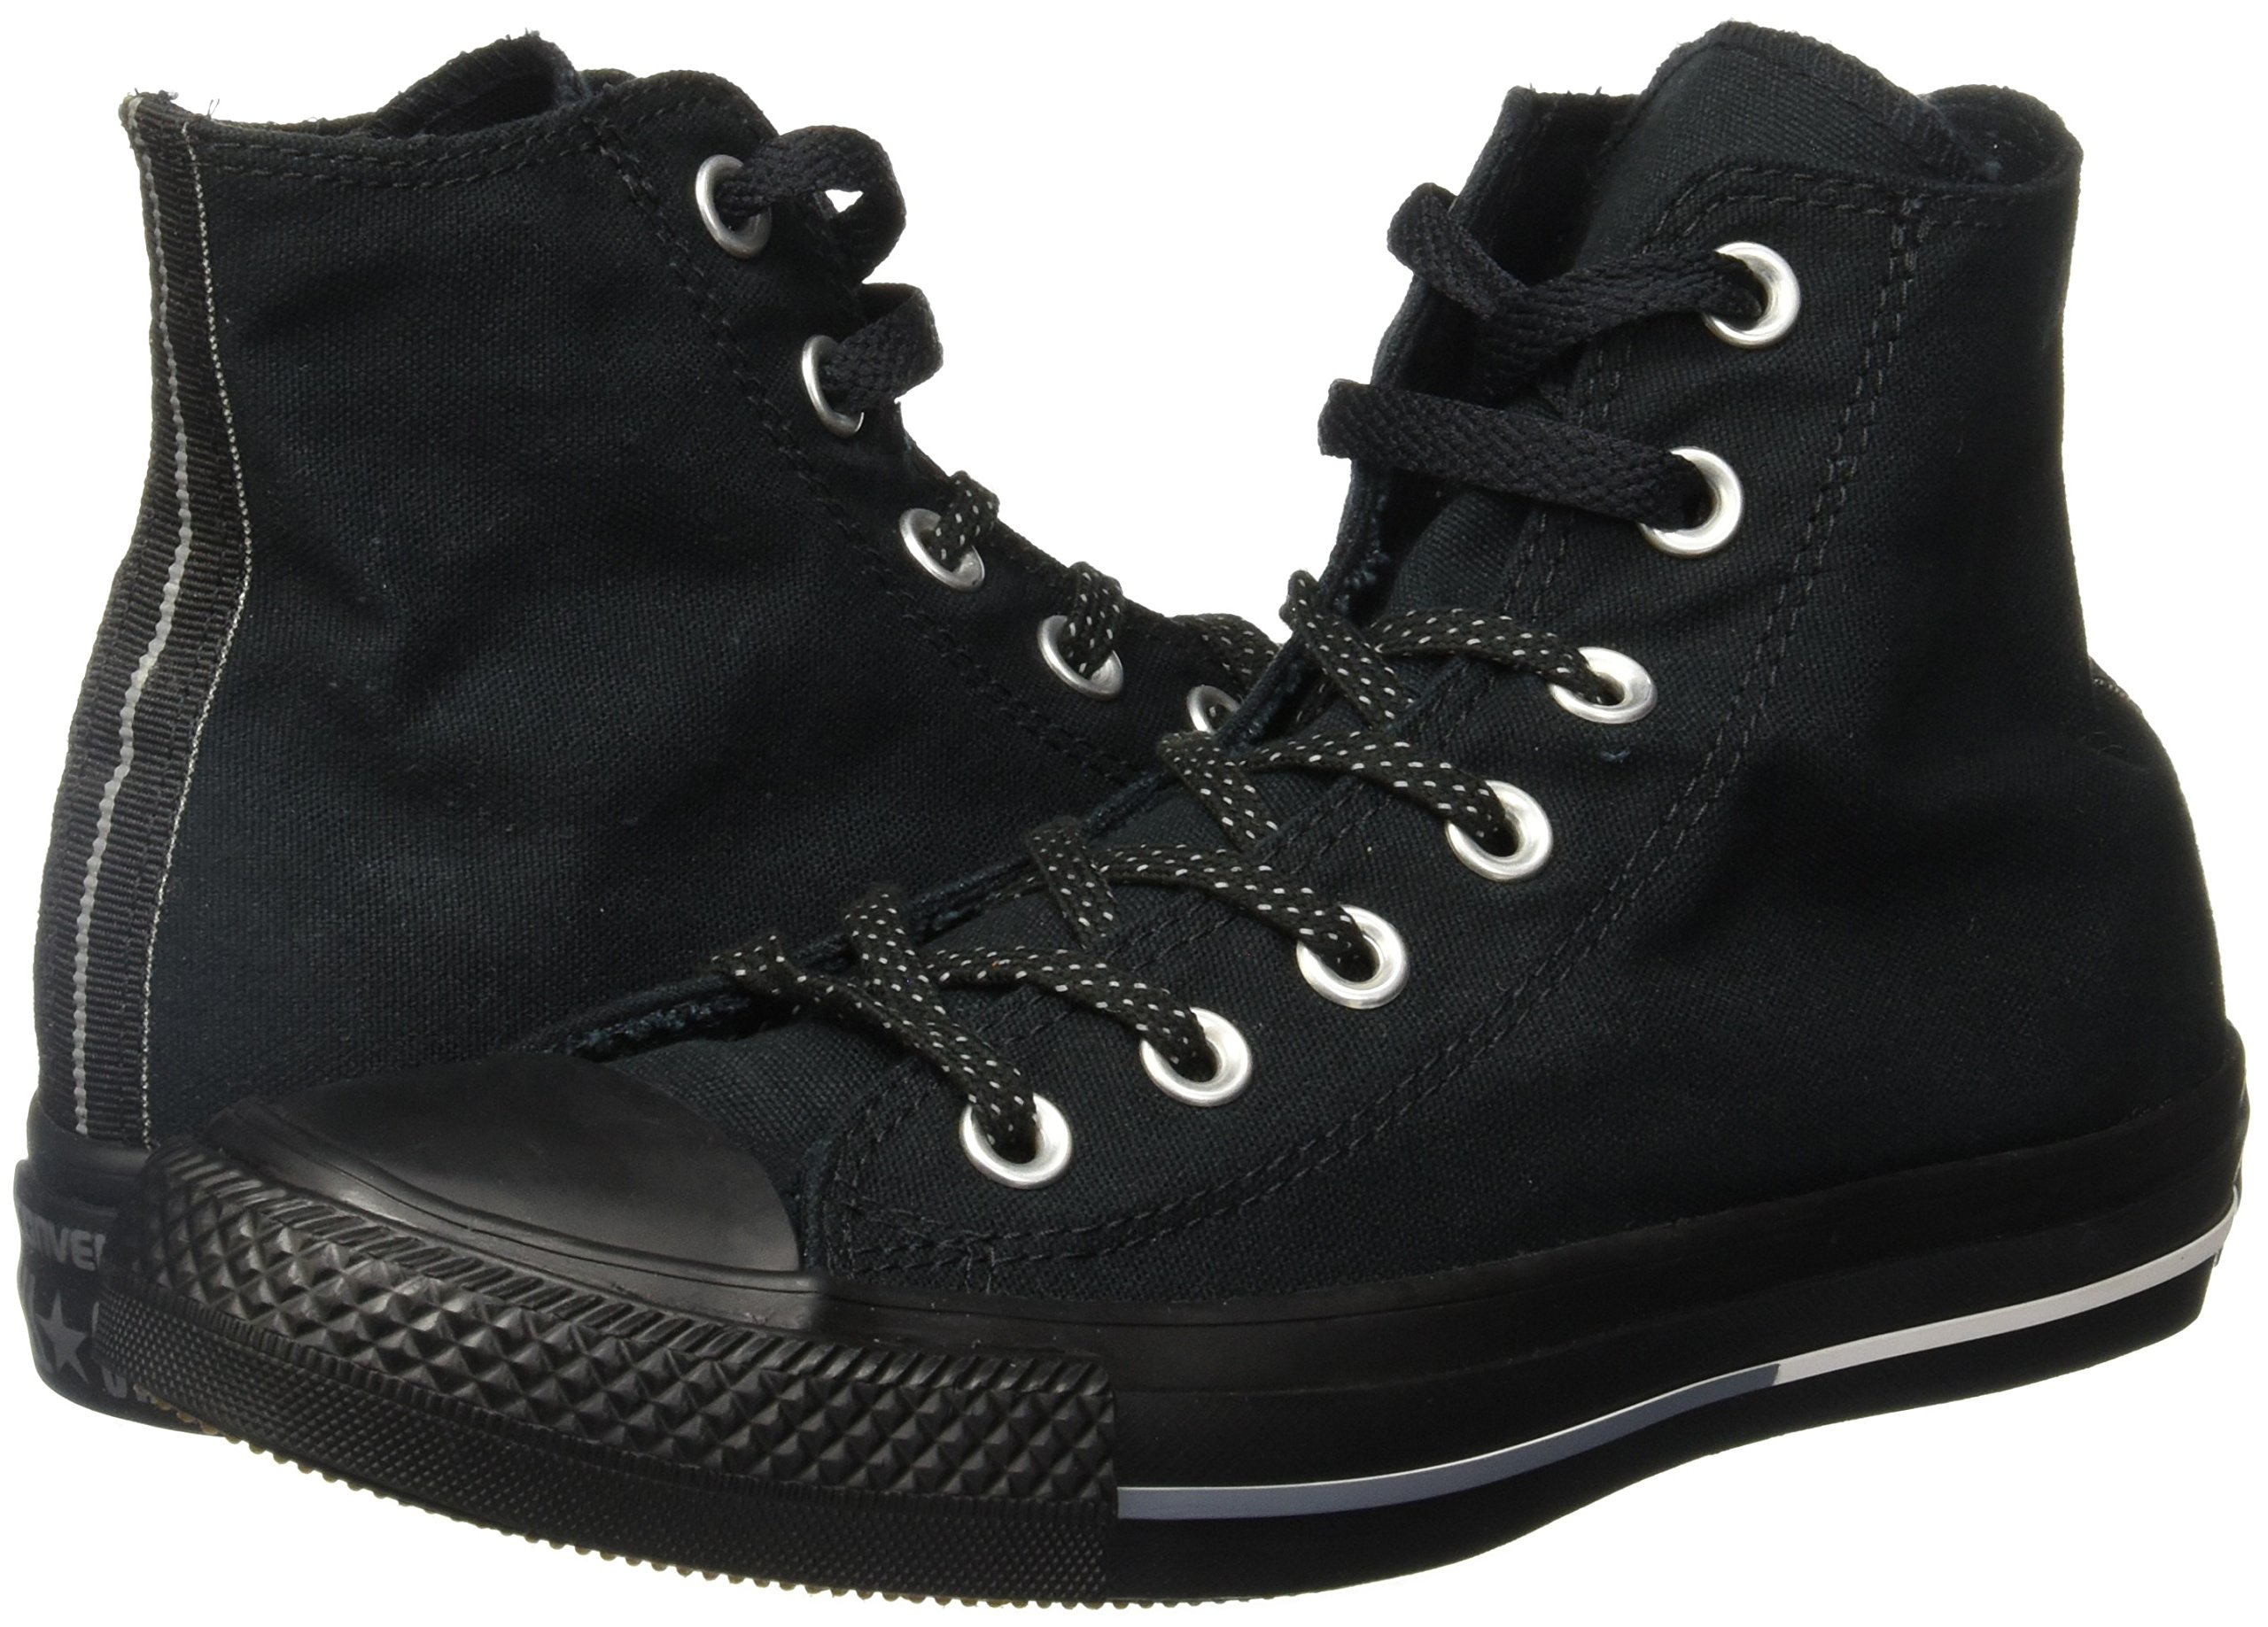 Converse Womens All Star Counter Climate Hi Top Boots - 4 B(M) US, (Black/Mason) by Converse (Image #5)